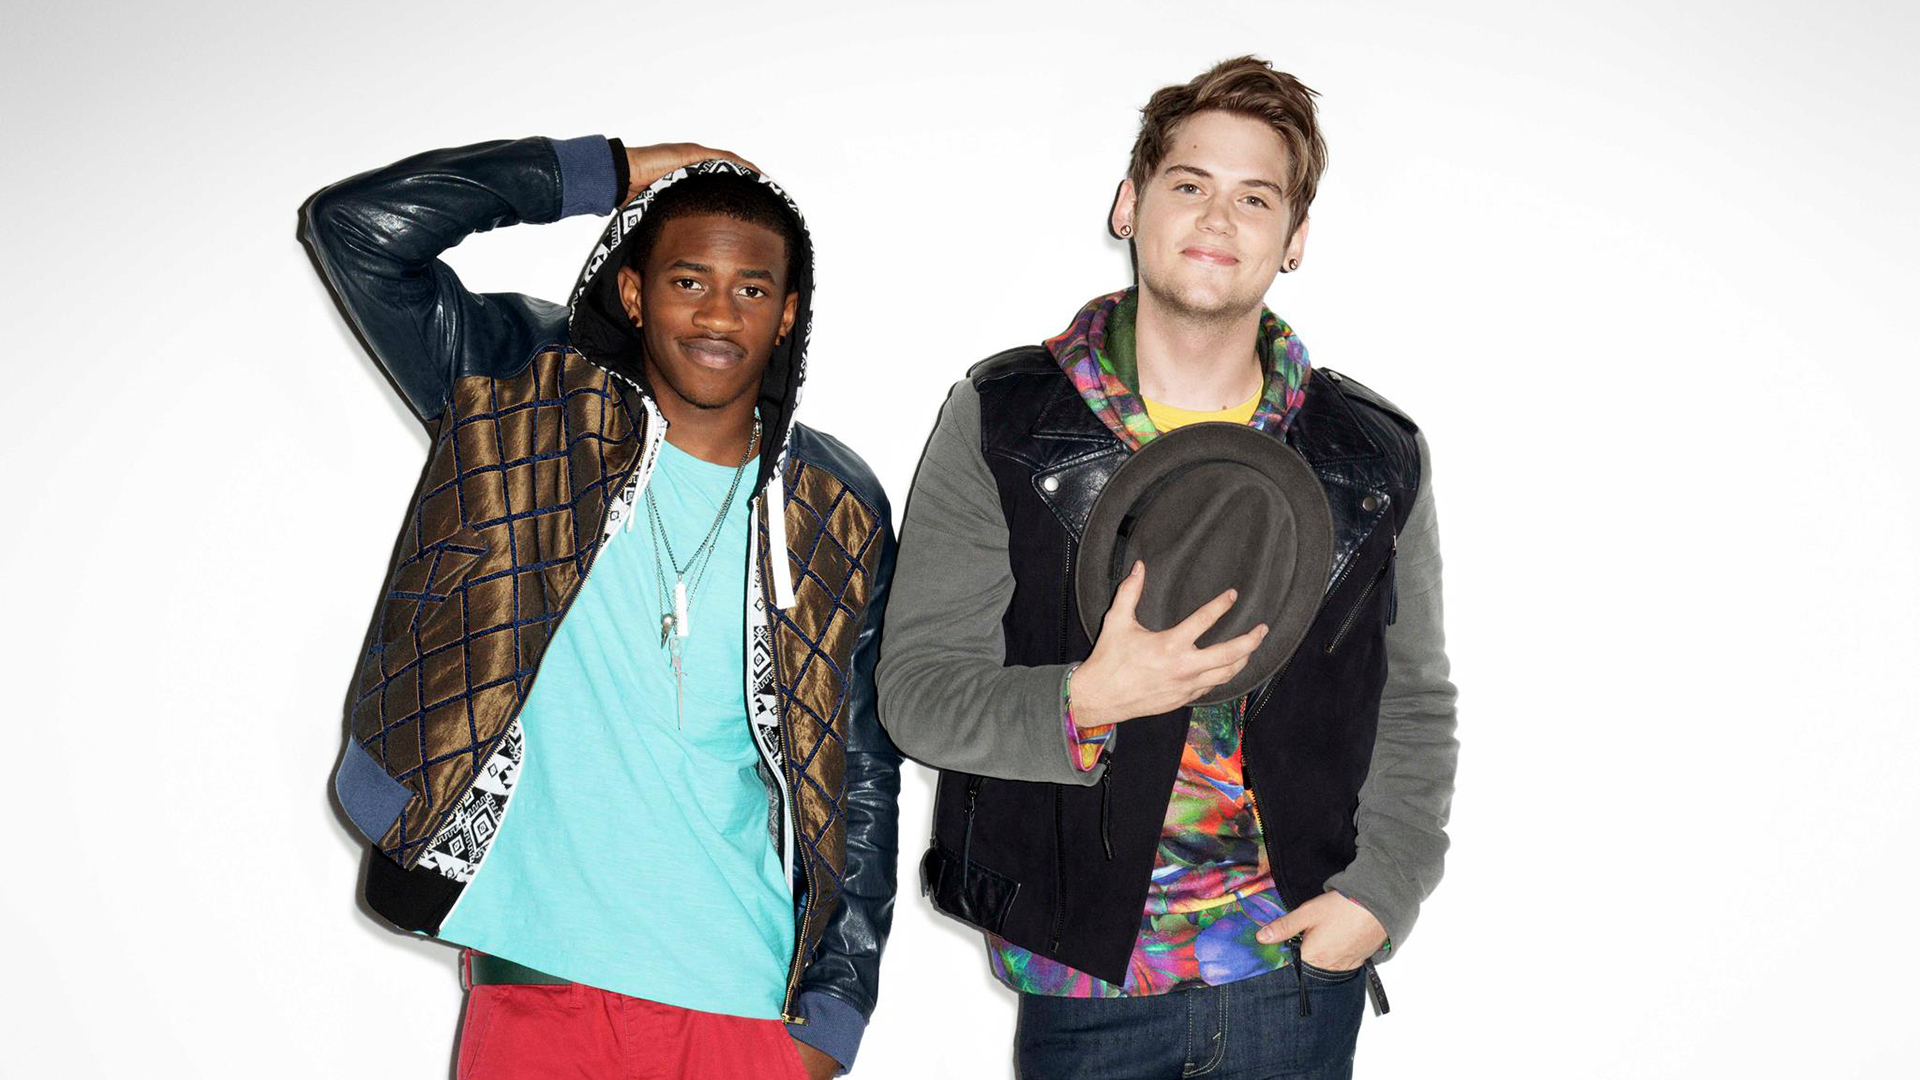 Superstitious av Mkto